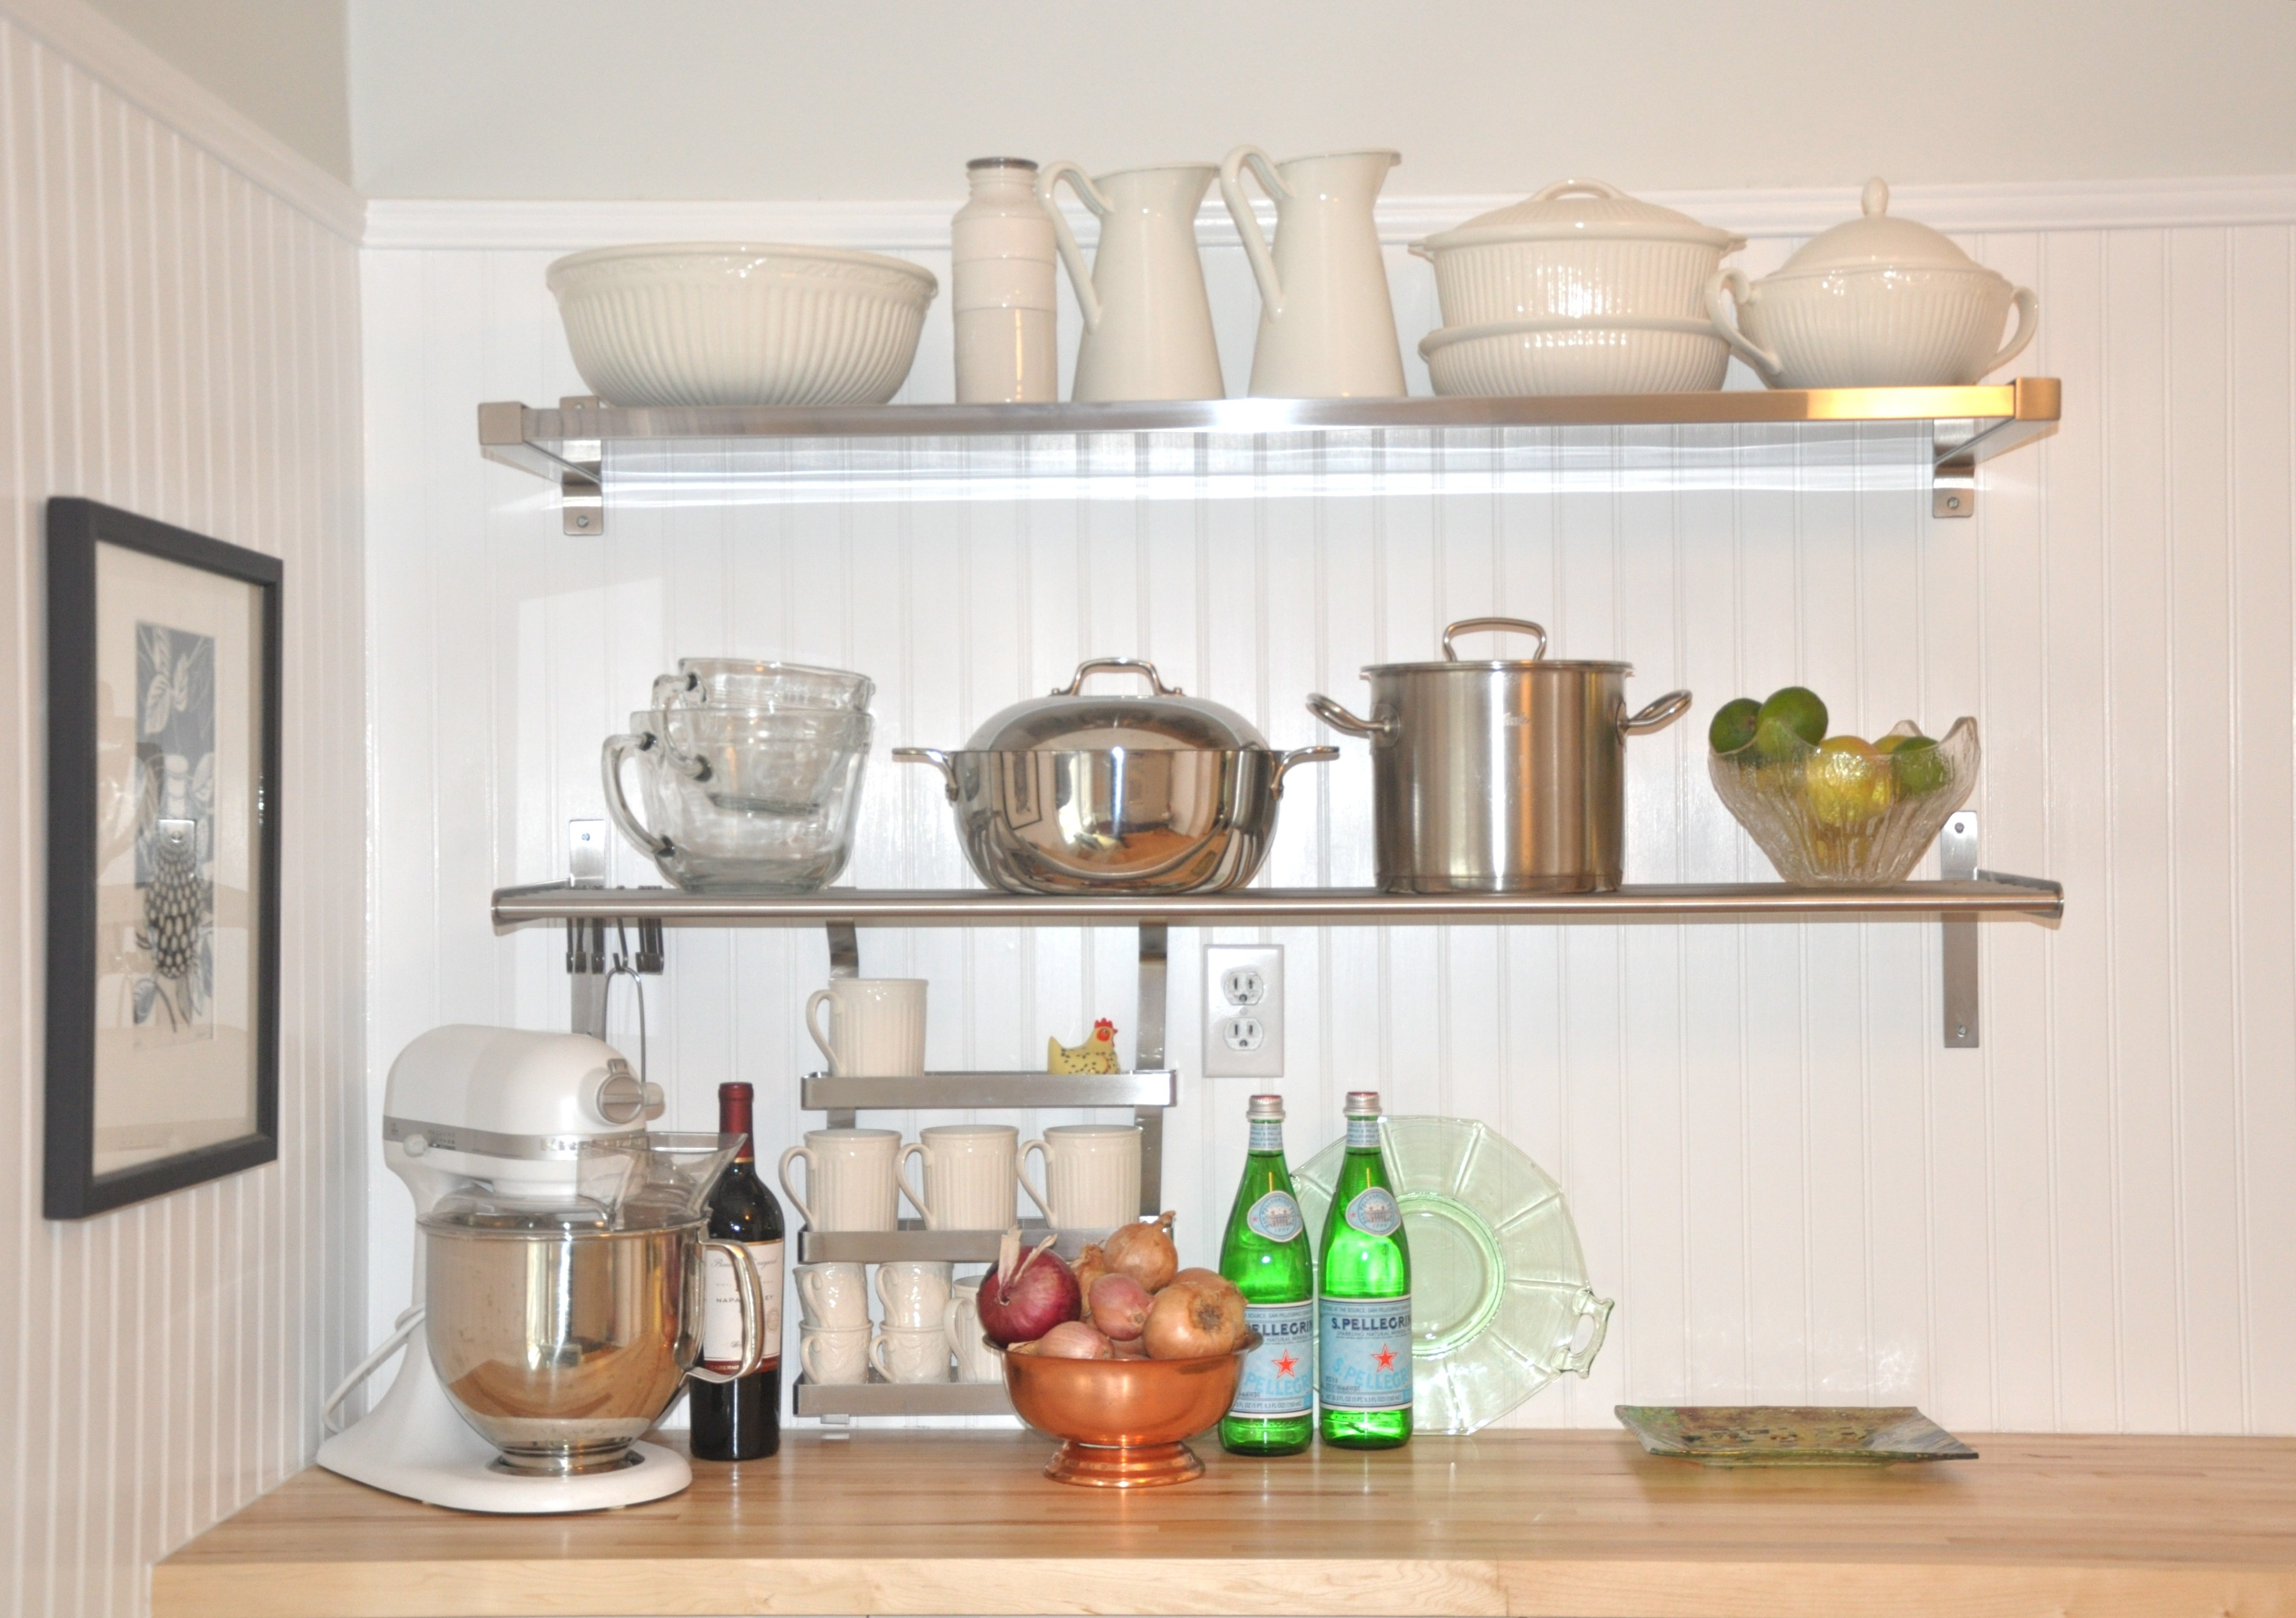 Kitchen Wall Shelves Wood Ideas Stainless Steel Wooden Eiforces Throughout Kitchen Wall Shelves (Image 11 of 15)